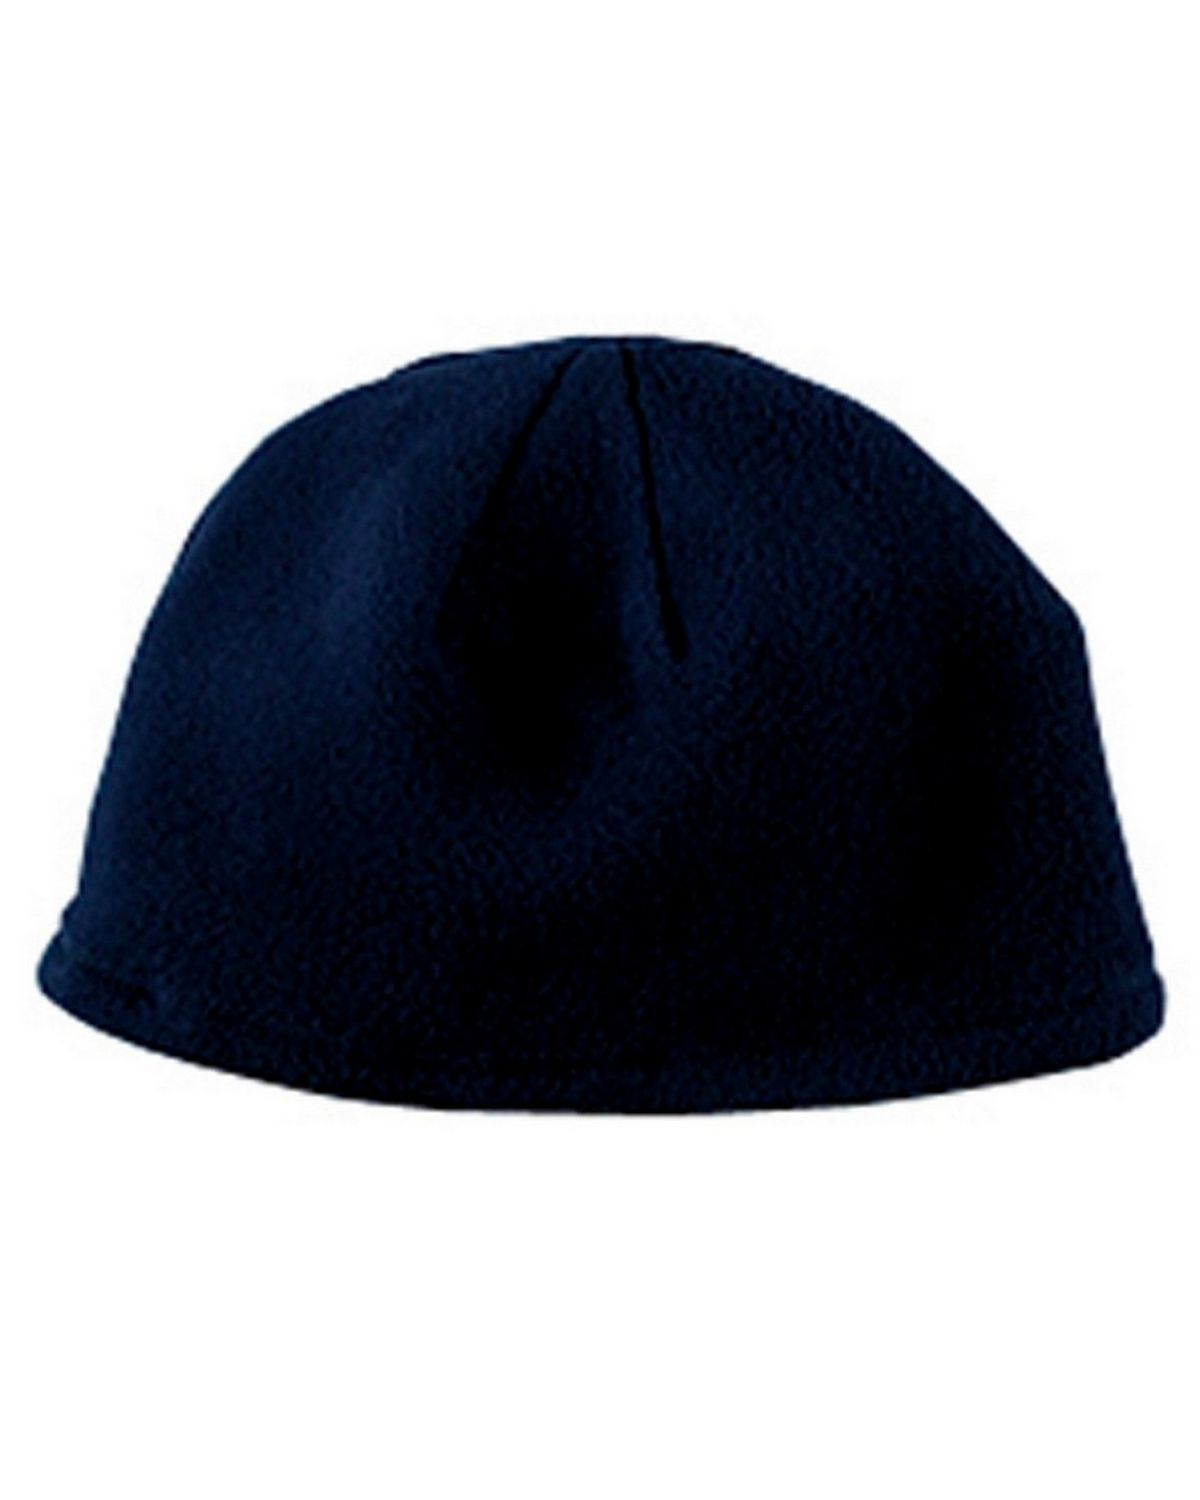 Big Accessories BX013 Knit Fleece Beanie - Navy - One Size BX013